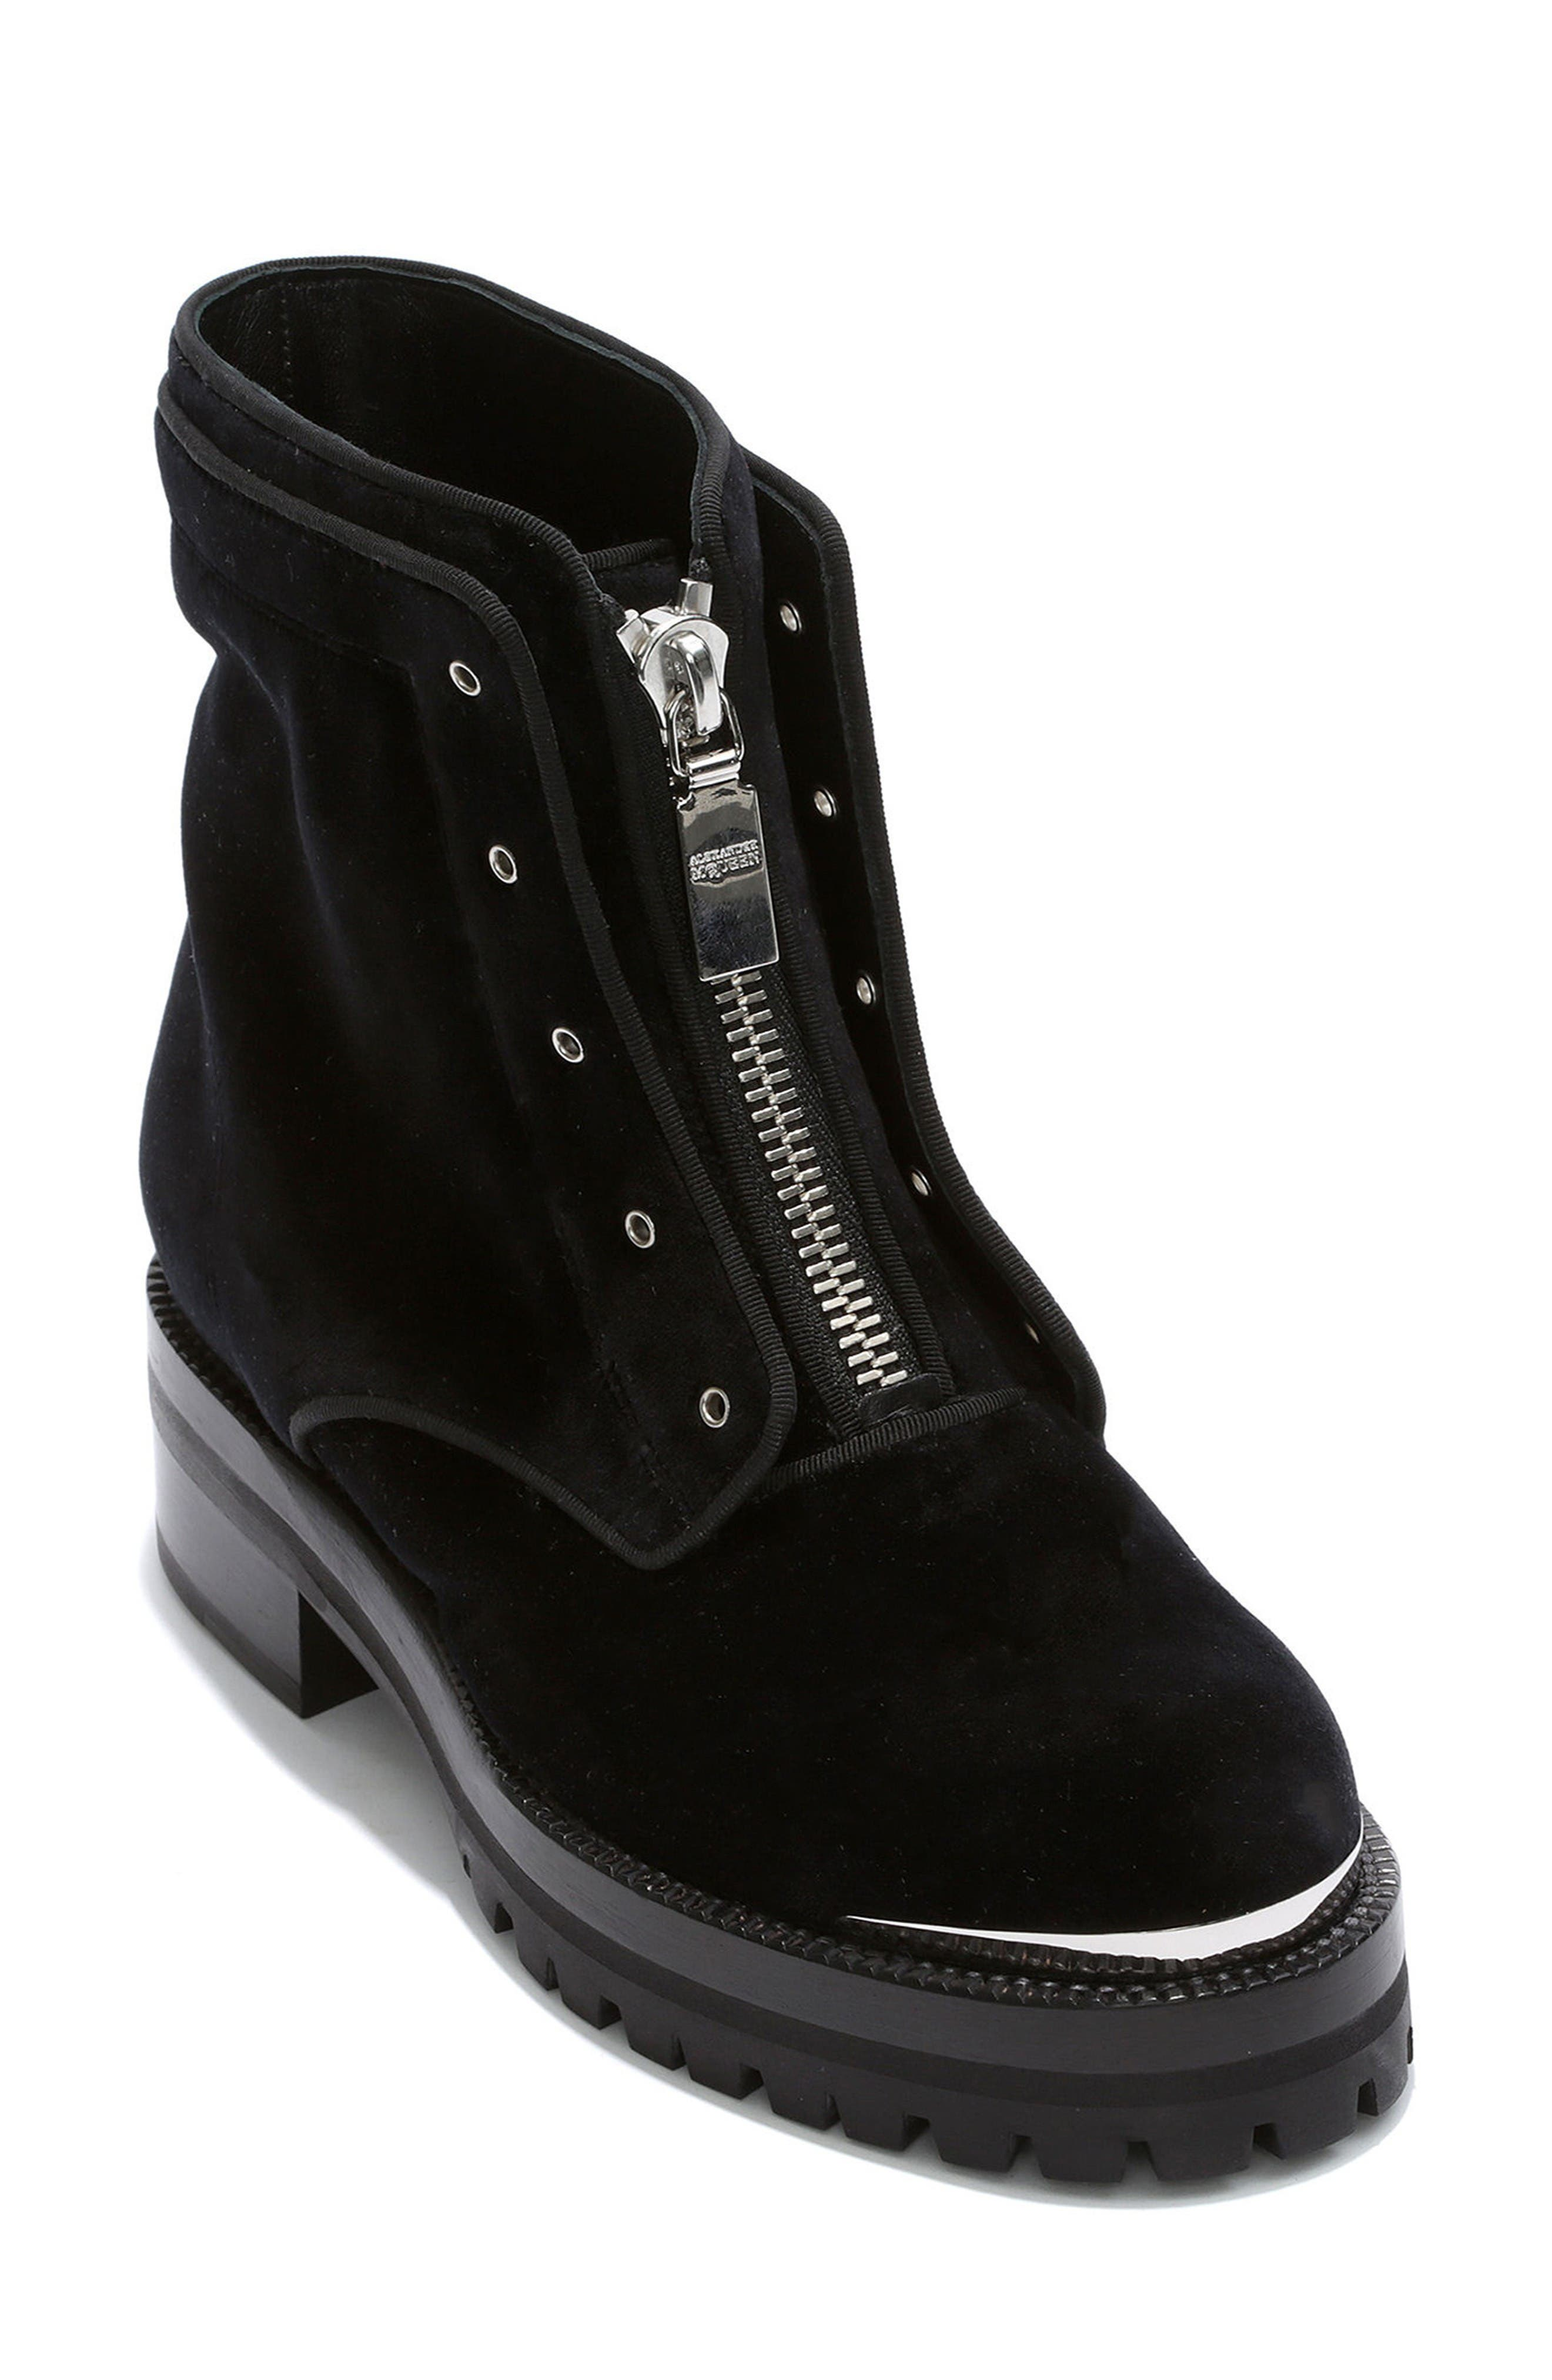 Alexander McQueen Ankle Boot (Women)